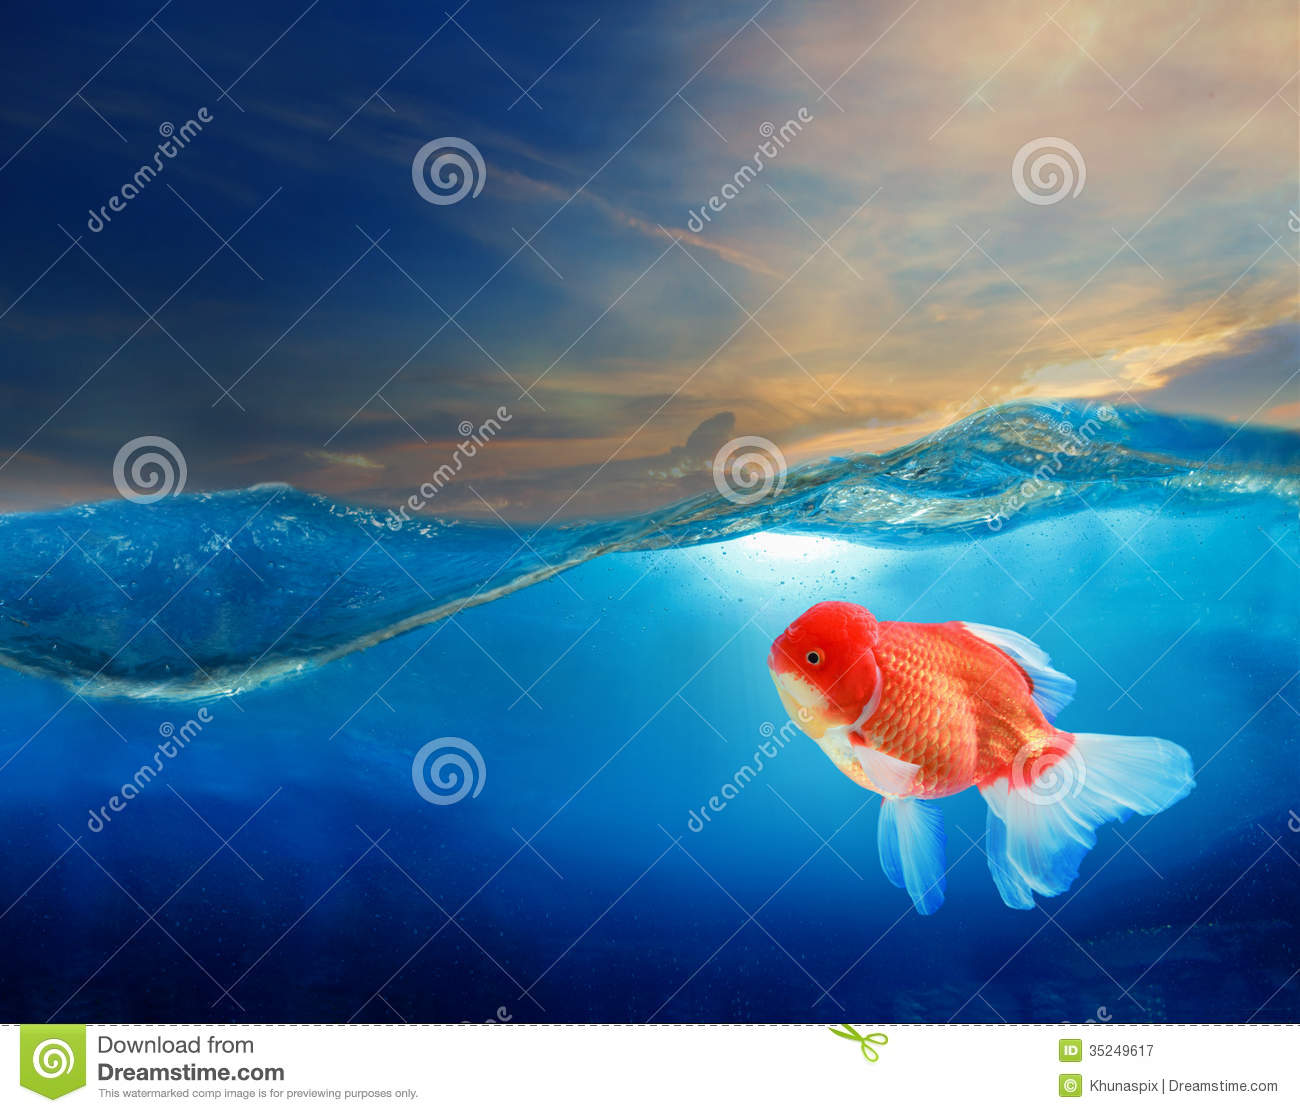 Gold fish under blue water with beautiful dramatic sky for Dream about fish out of water